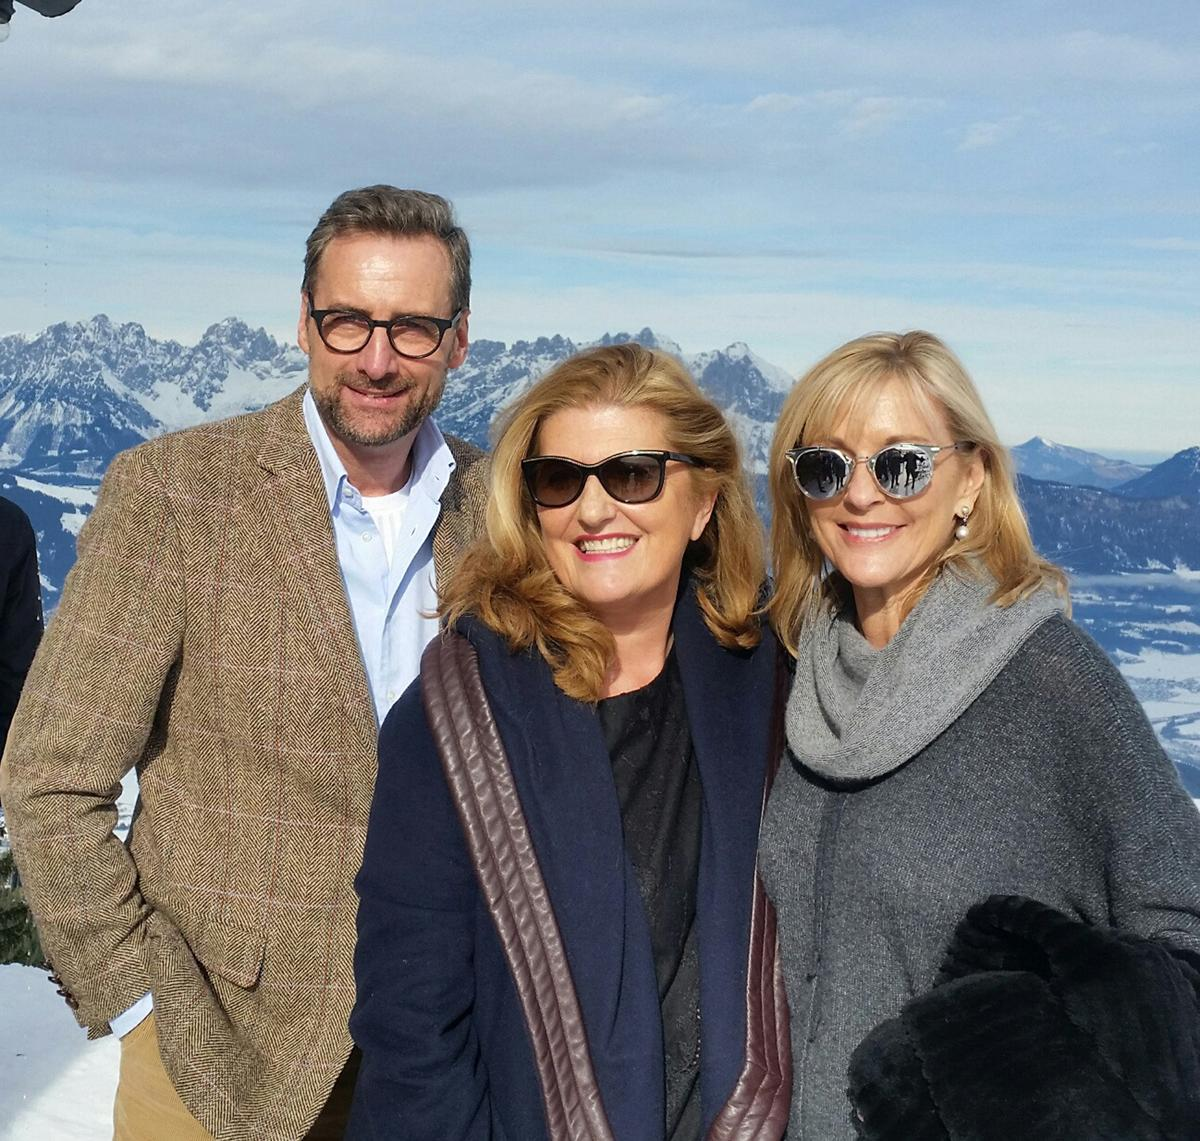 GWS co-chairs Dr. Franz Linser (left) and Sue Harmsworth (middle), with GWS CEO Susie Ellis (right) in Austria